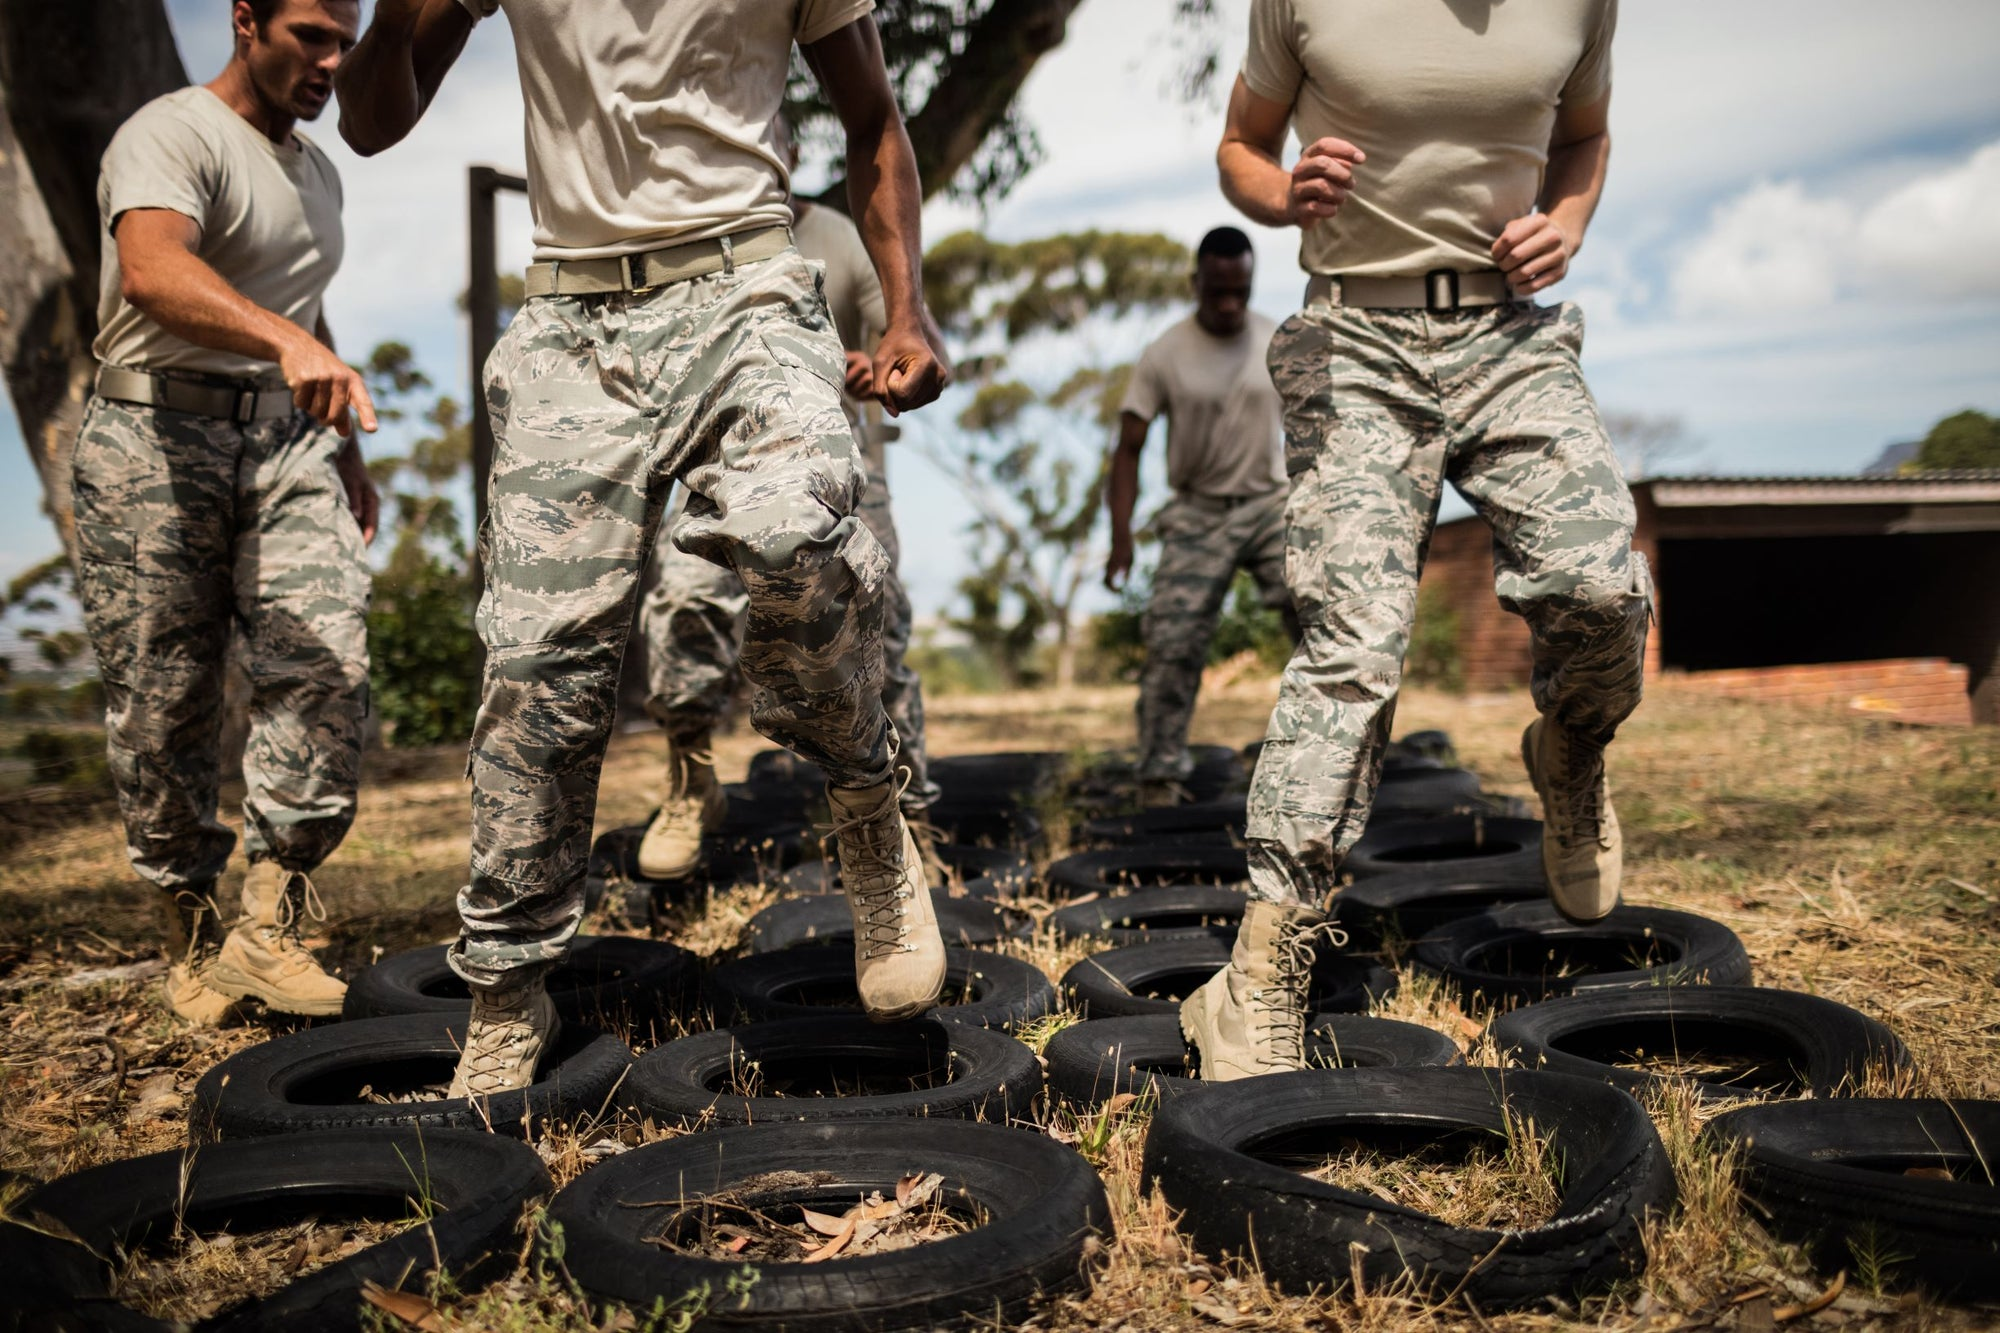 The Marine Corps Workout Routine: 5 Key Exercises